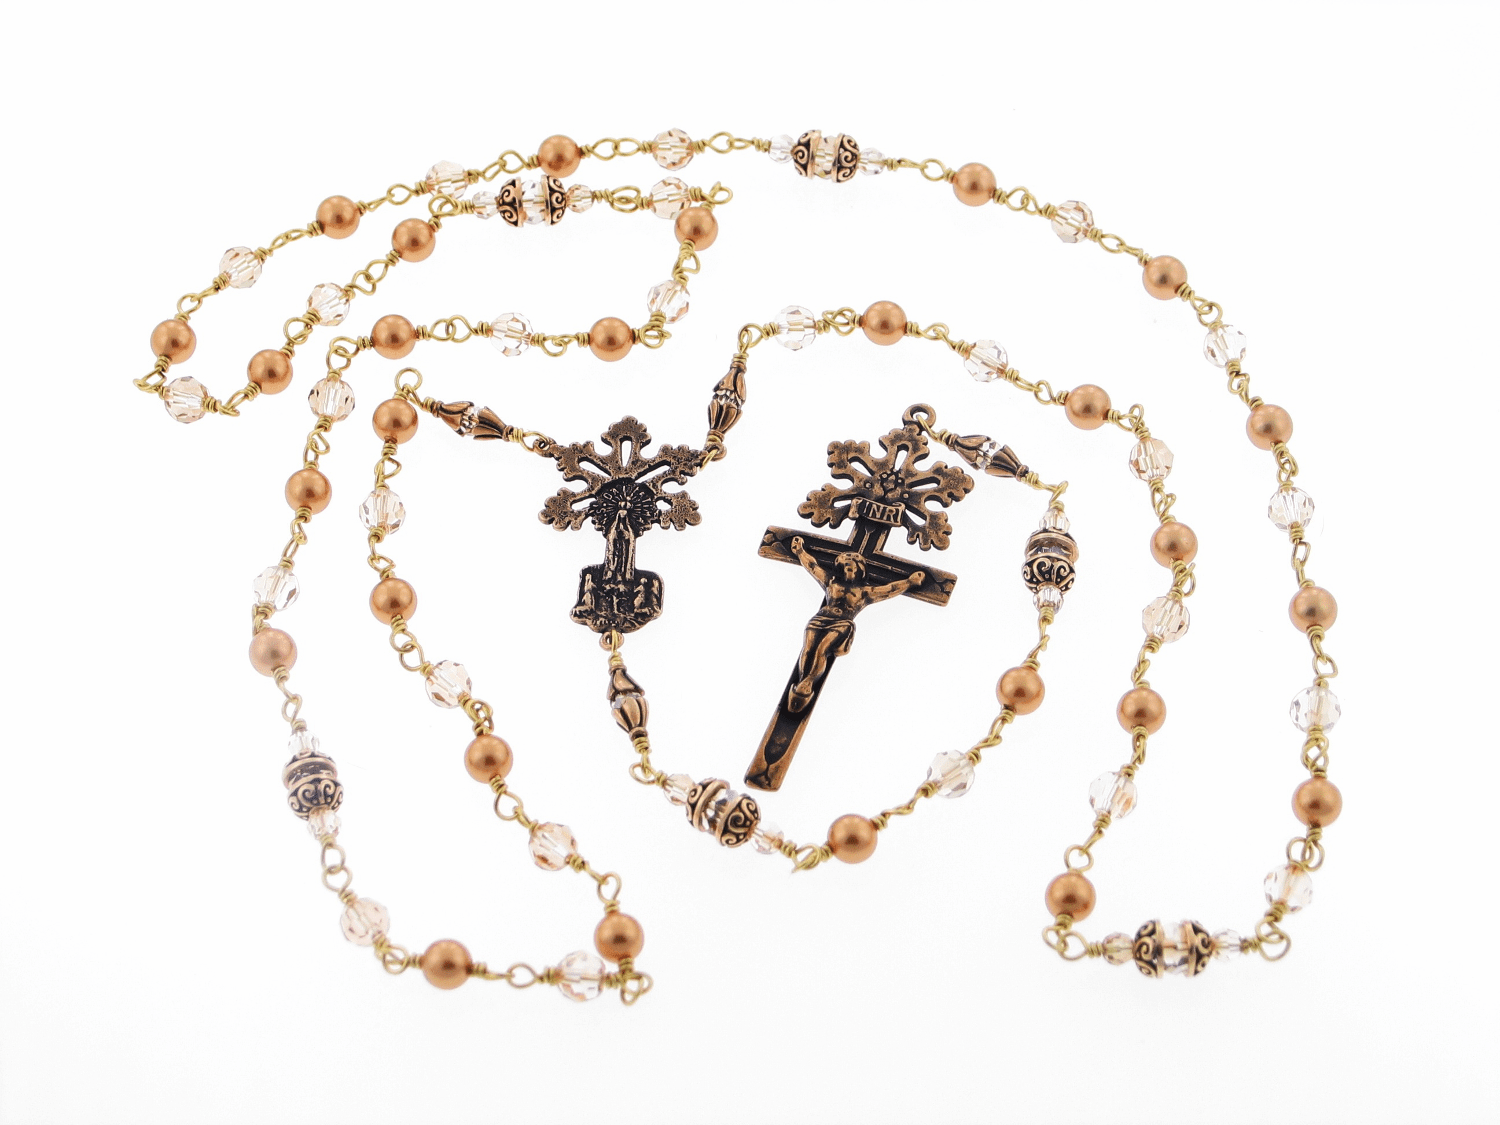 Bronze Radiant Our Lady of Fatima Gold Pearl and Crystal Rosary